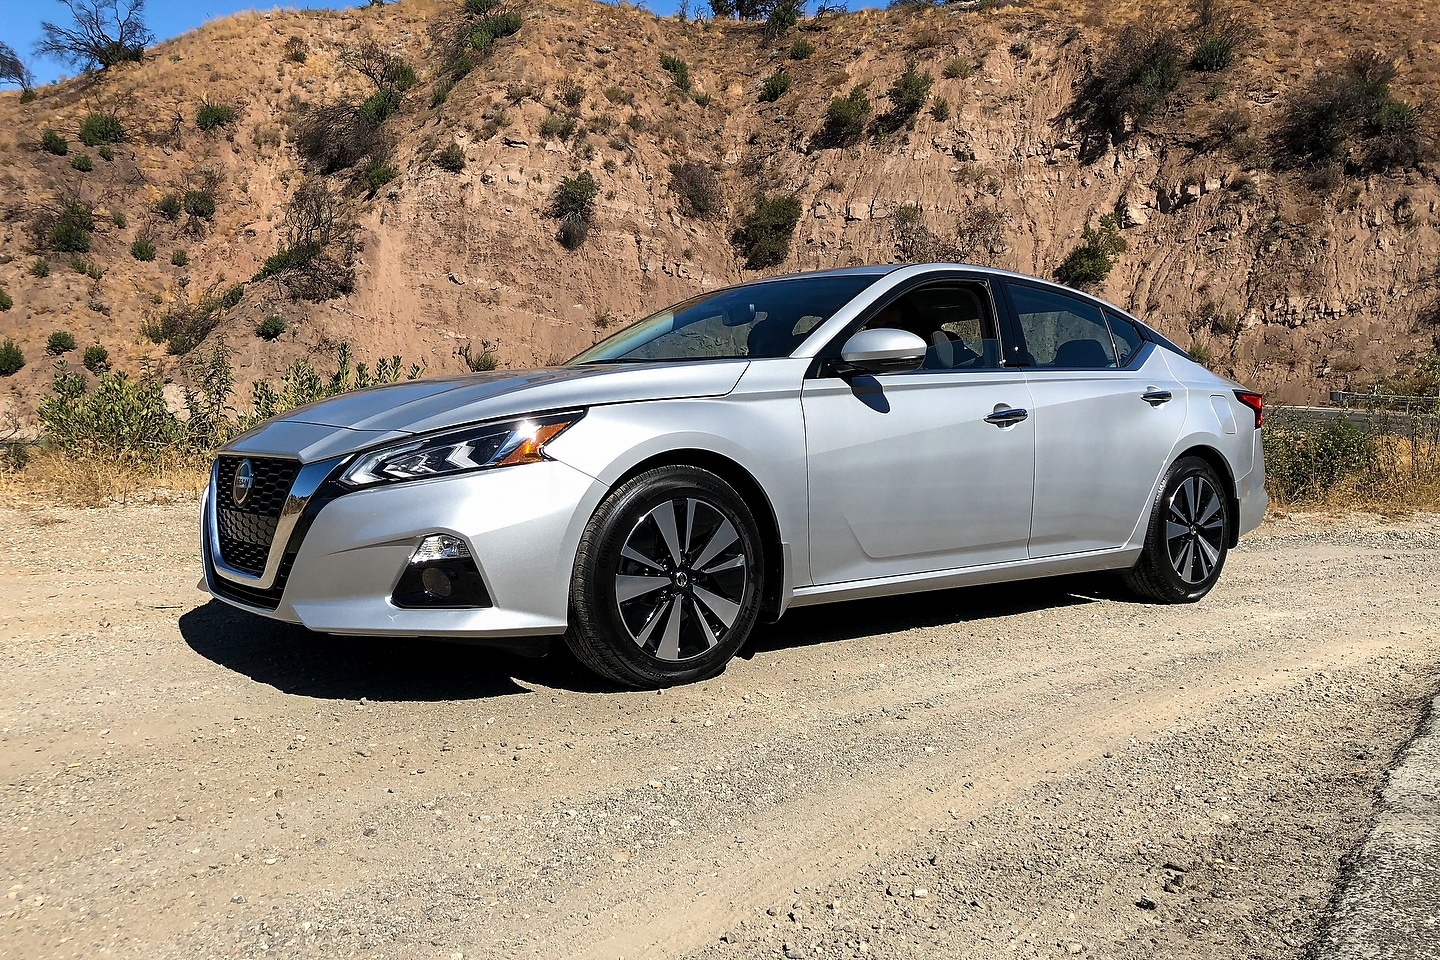 2019 Nissan Altima First Review - Motor Illustrated